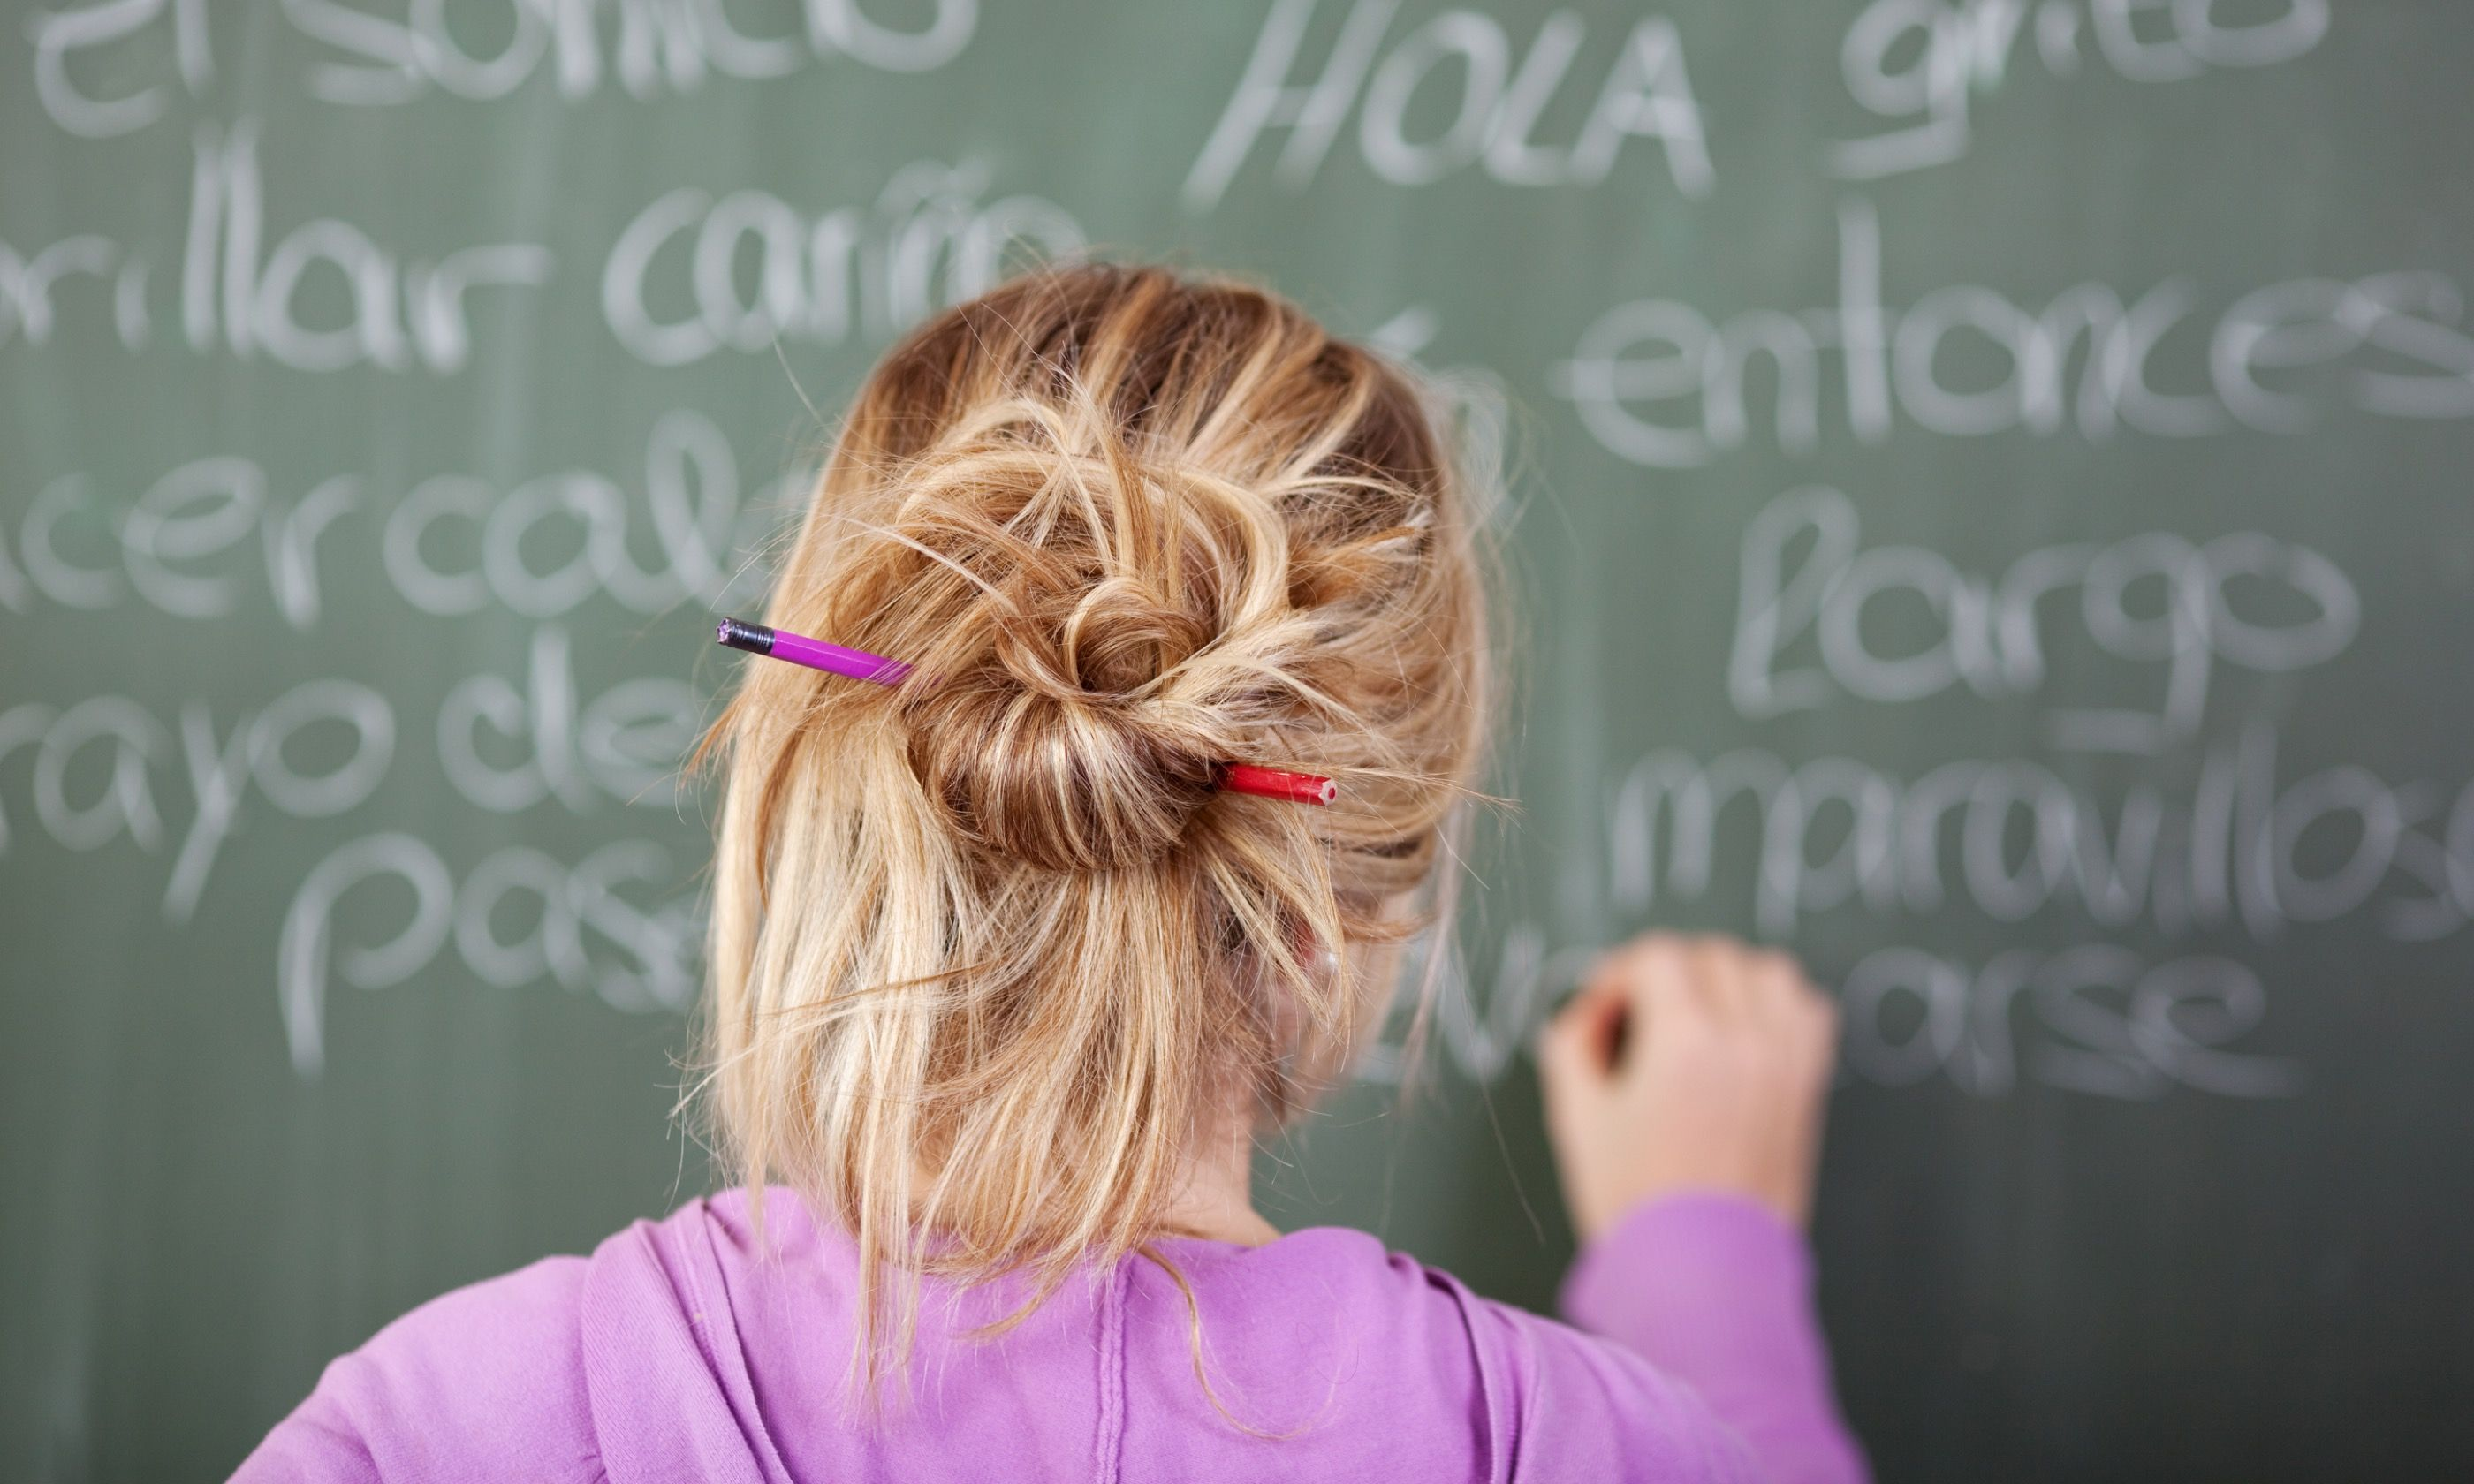 Female student during Spanish class (Shutterstock)